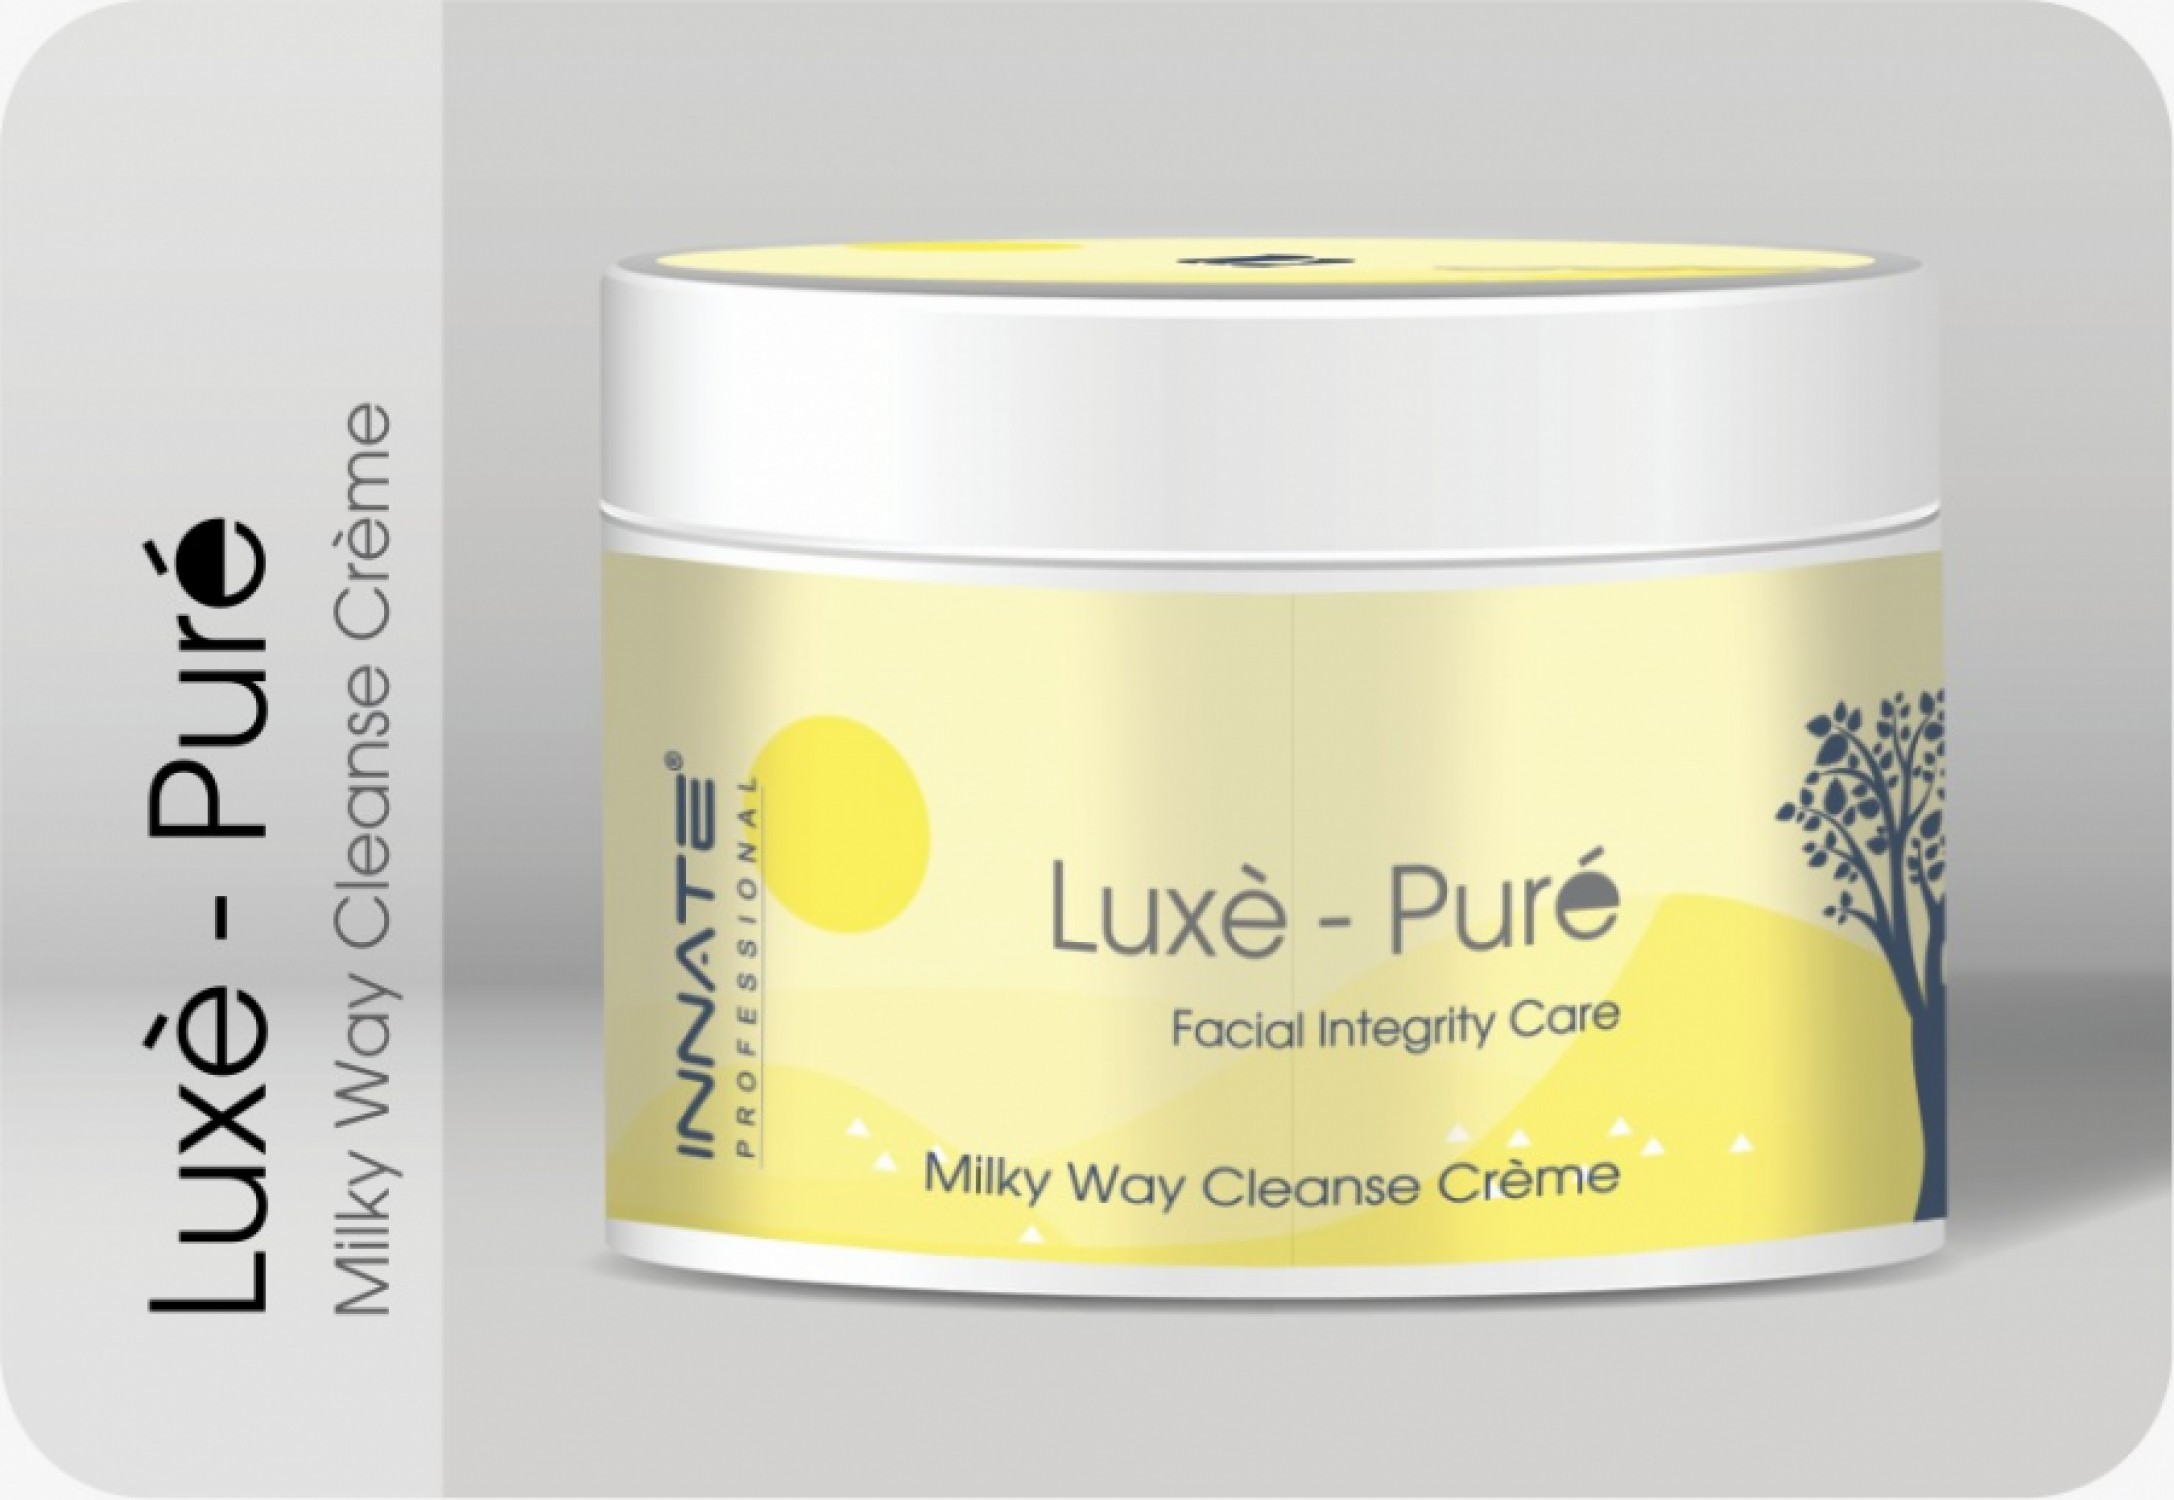 1599653490-h-1500-Milky way cleanse creme.jpeg